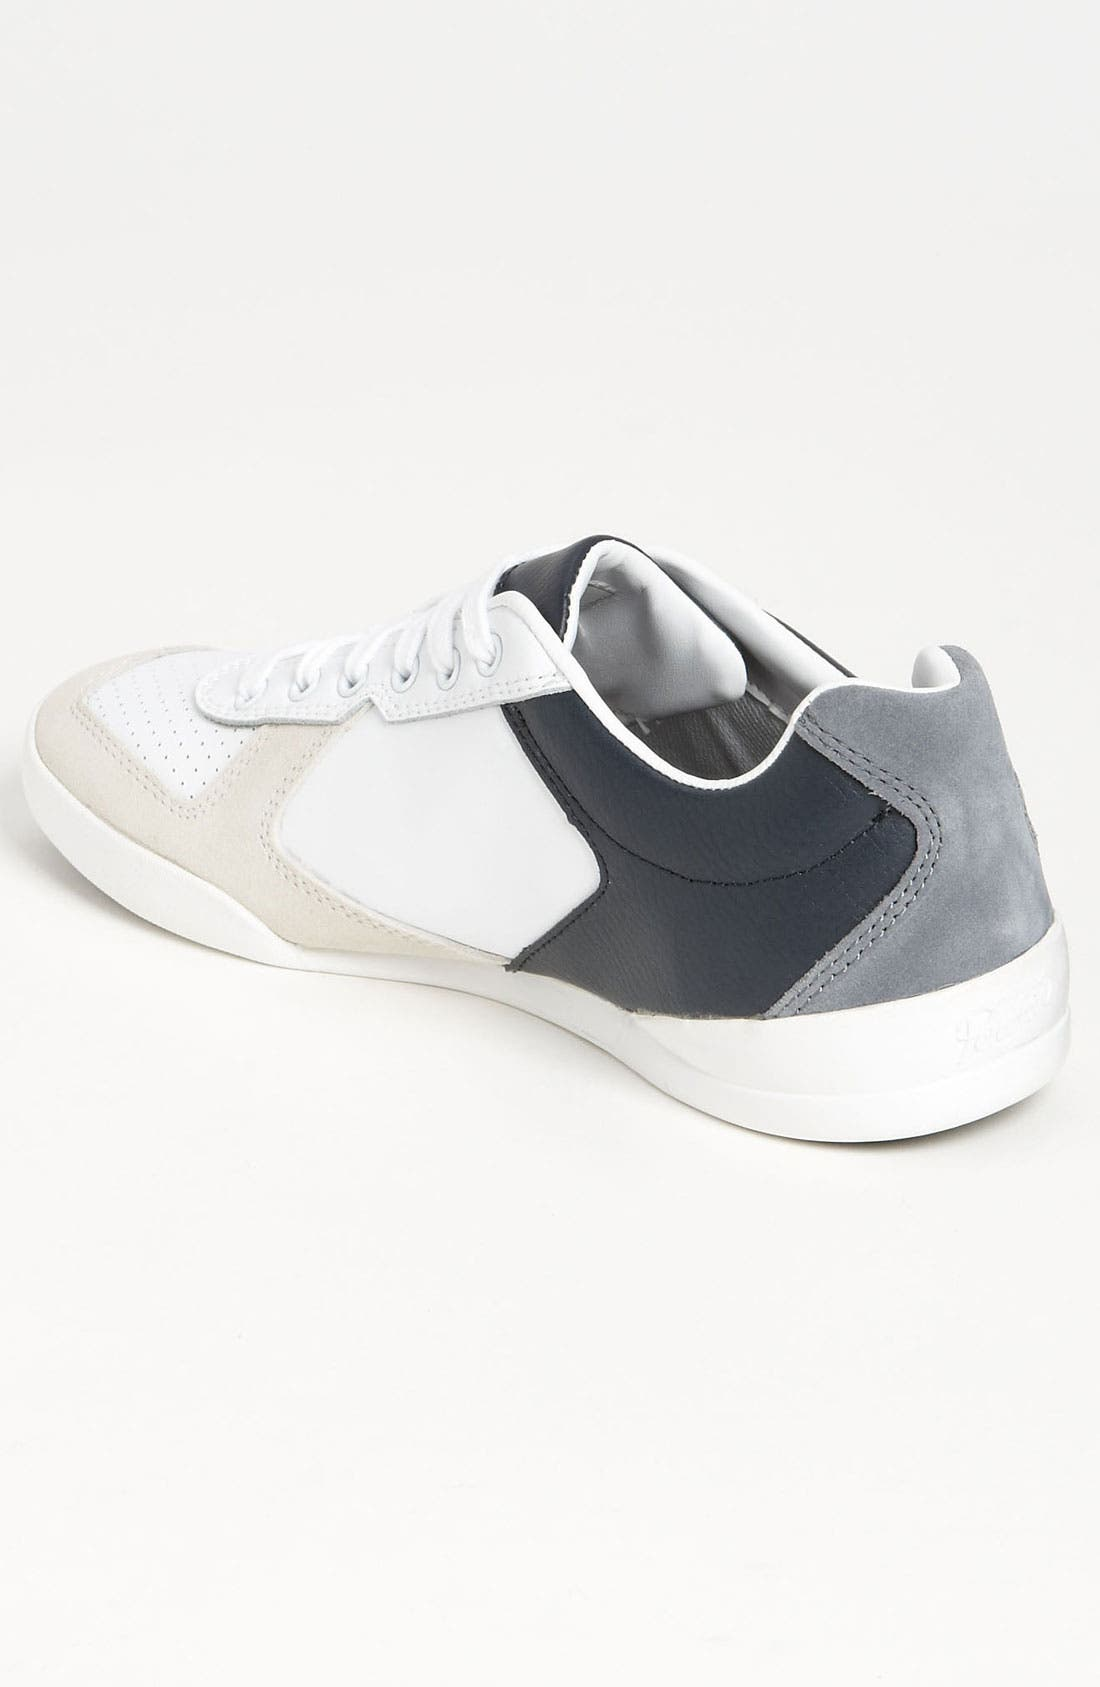 Alternate Image 2  - Original Penguin 'Fandango' Sneaker